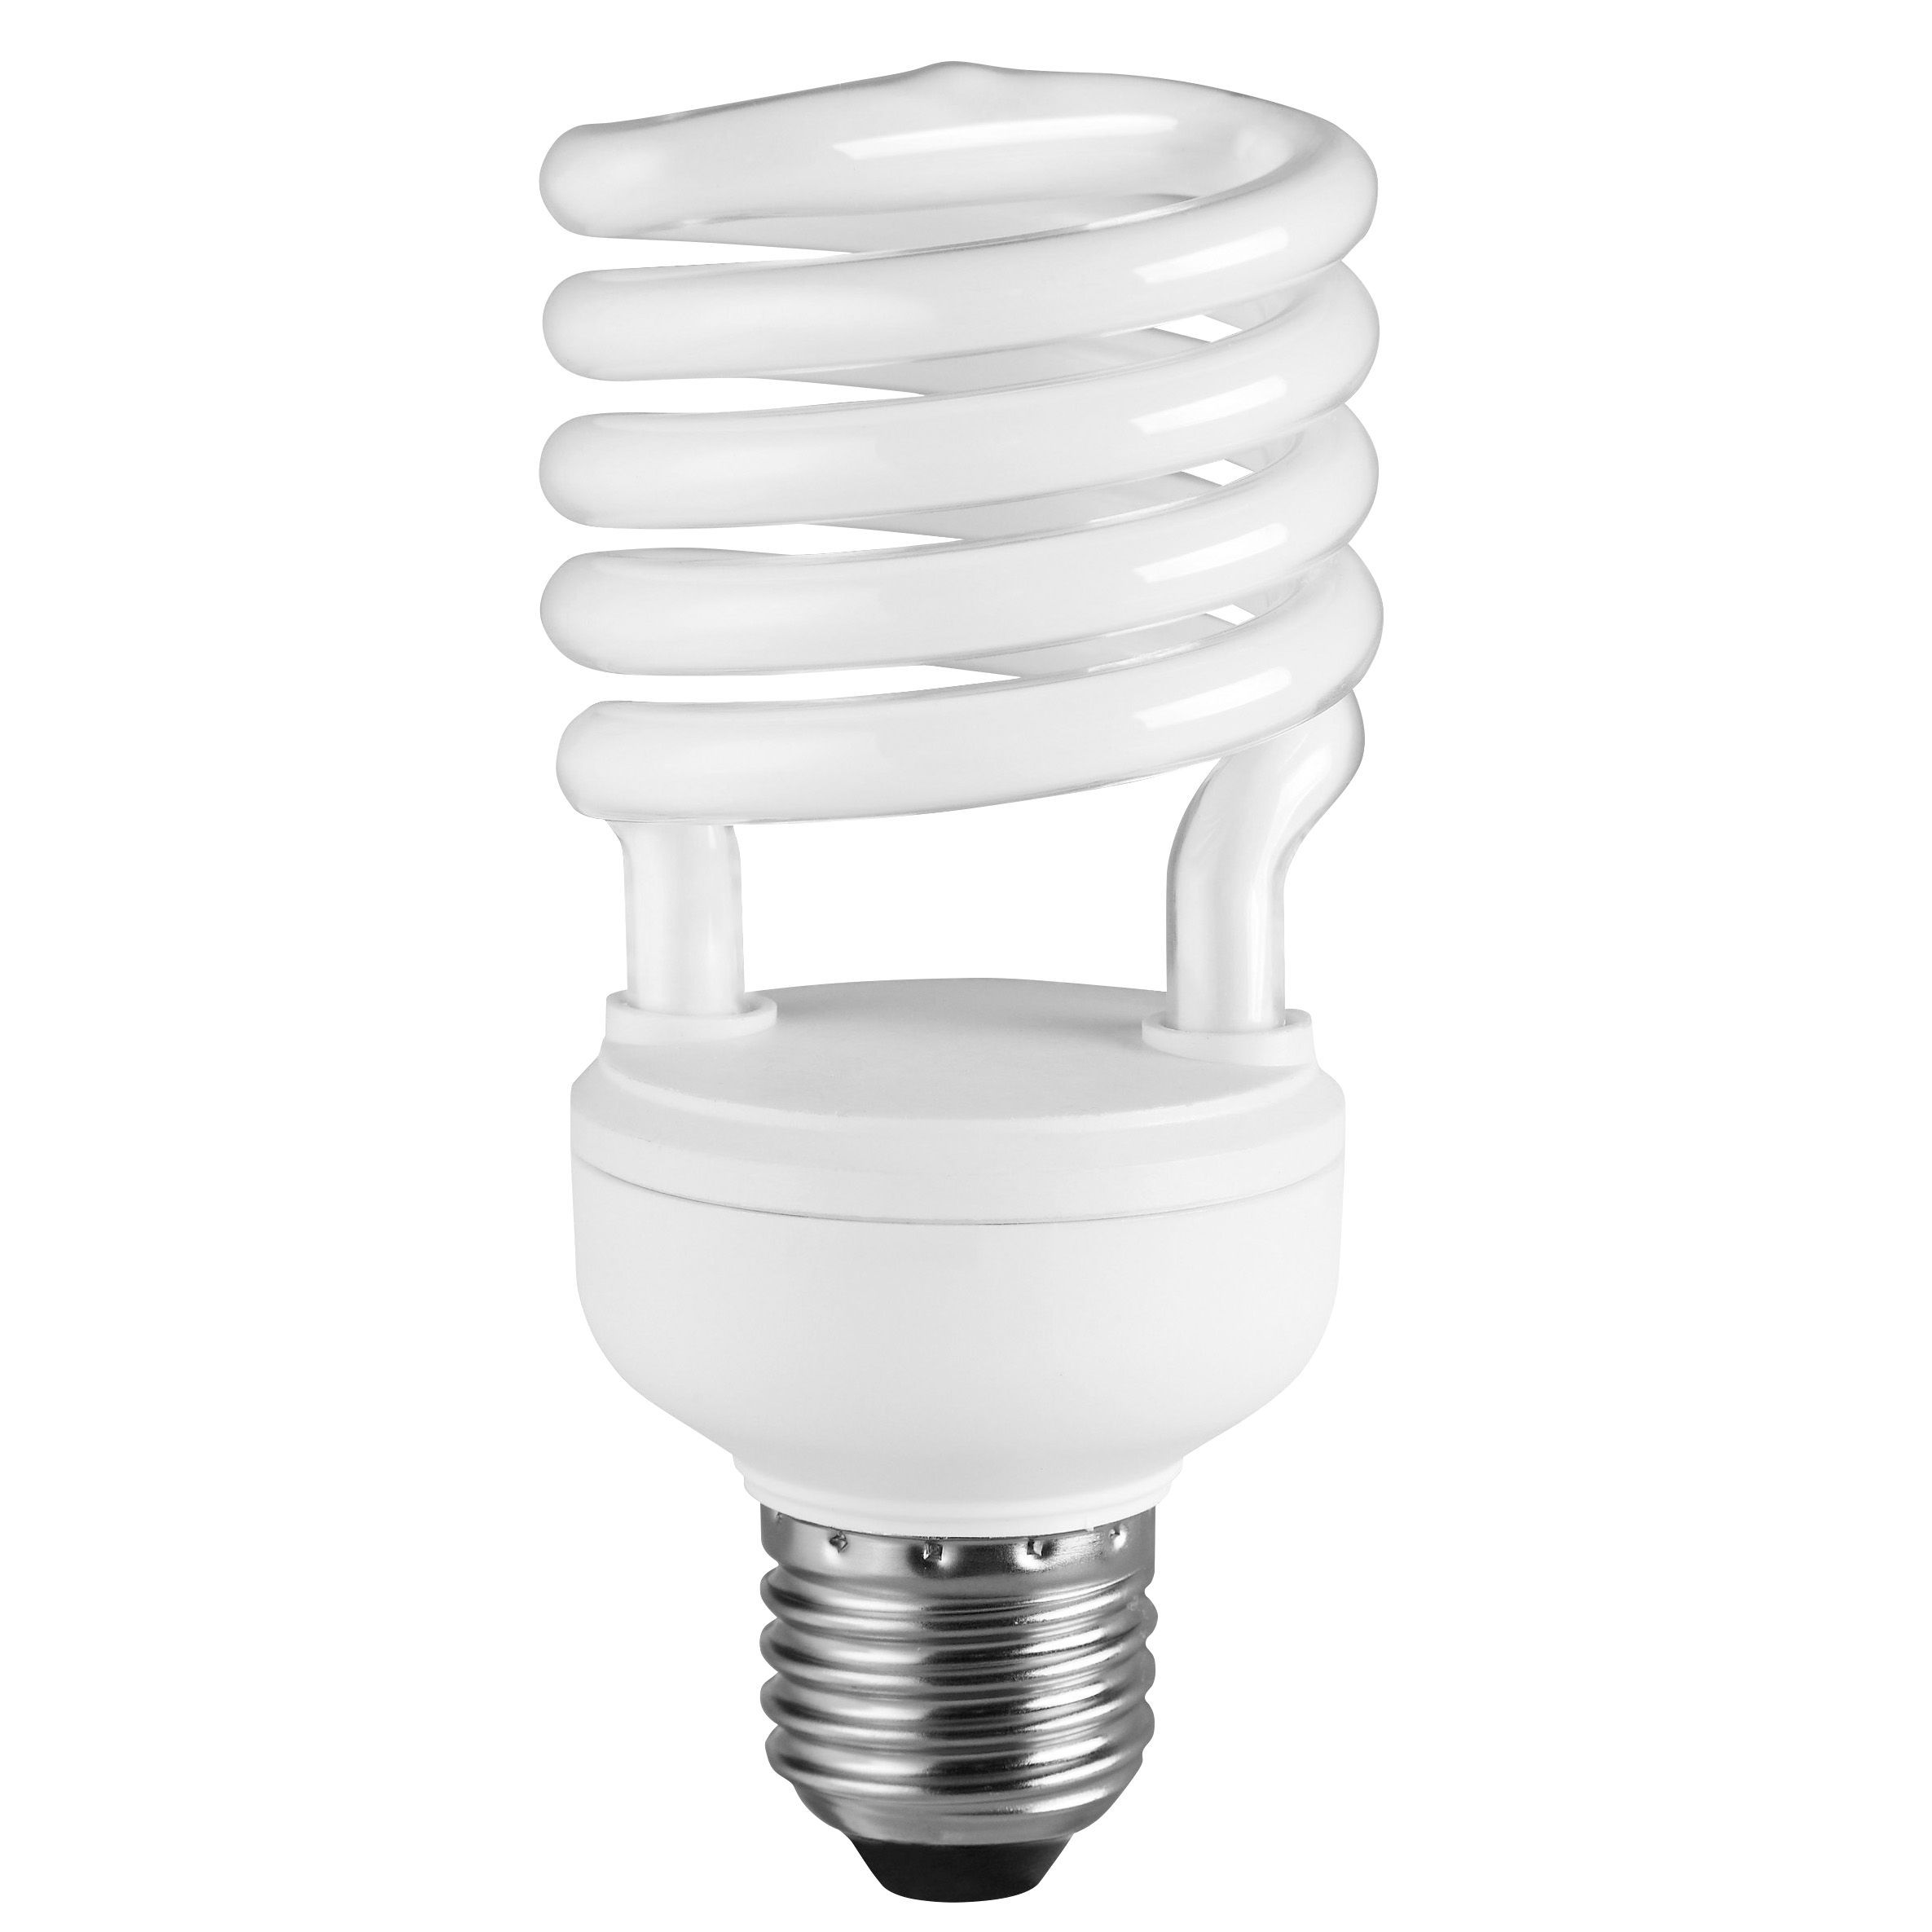 Diall E27 23w Cfl Spiral Light Bulb Departments Diy At Bq Make Your Own Beautiful  HD Wallpapers, Images Over 1000+ [ralydesign.ml]